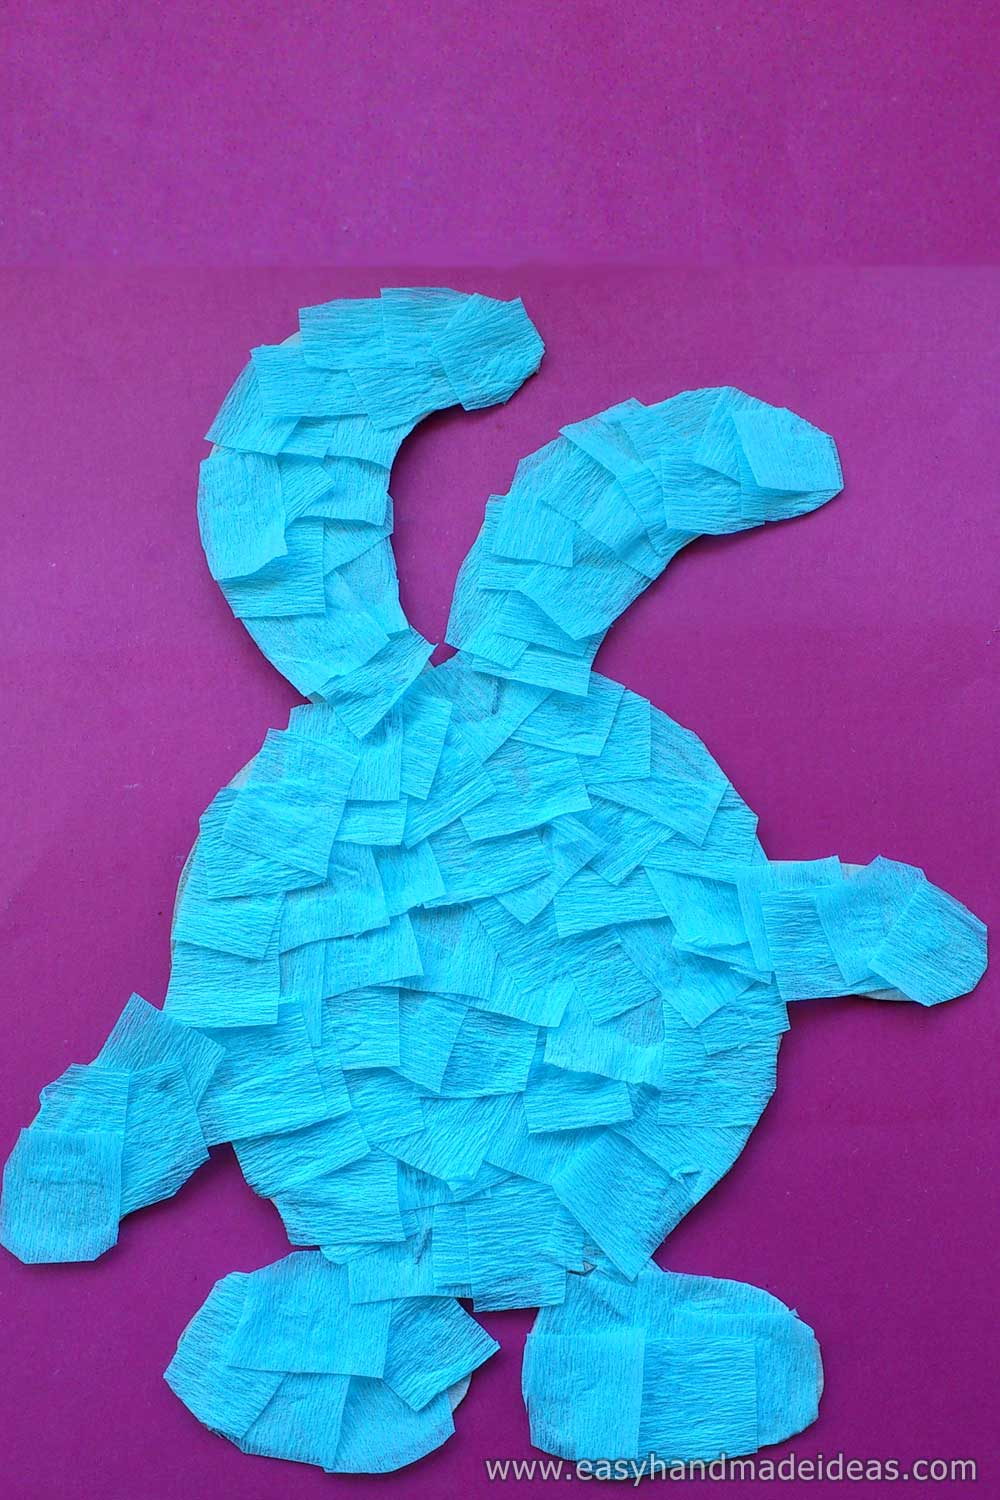 Glued Rabbit with Crepe Paper